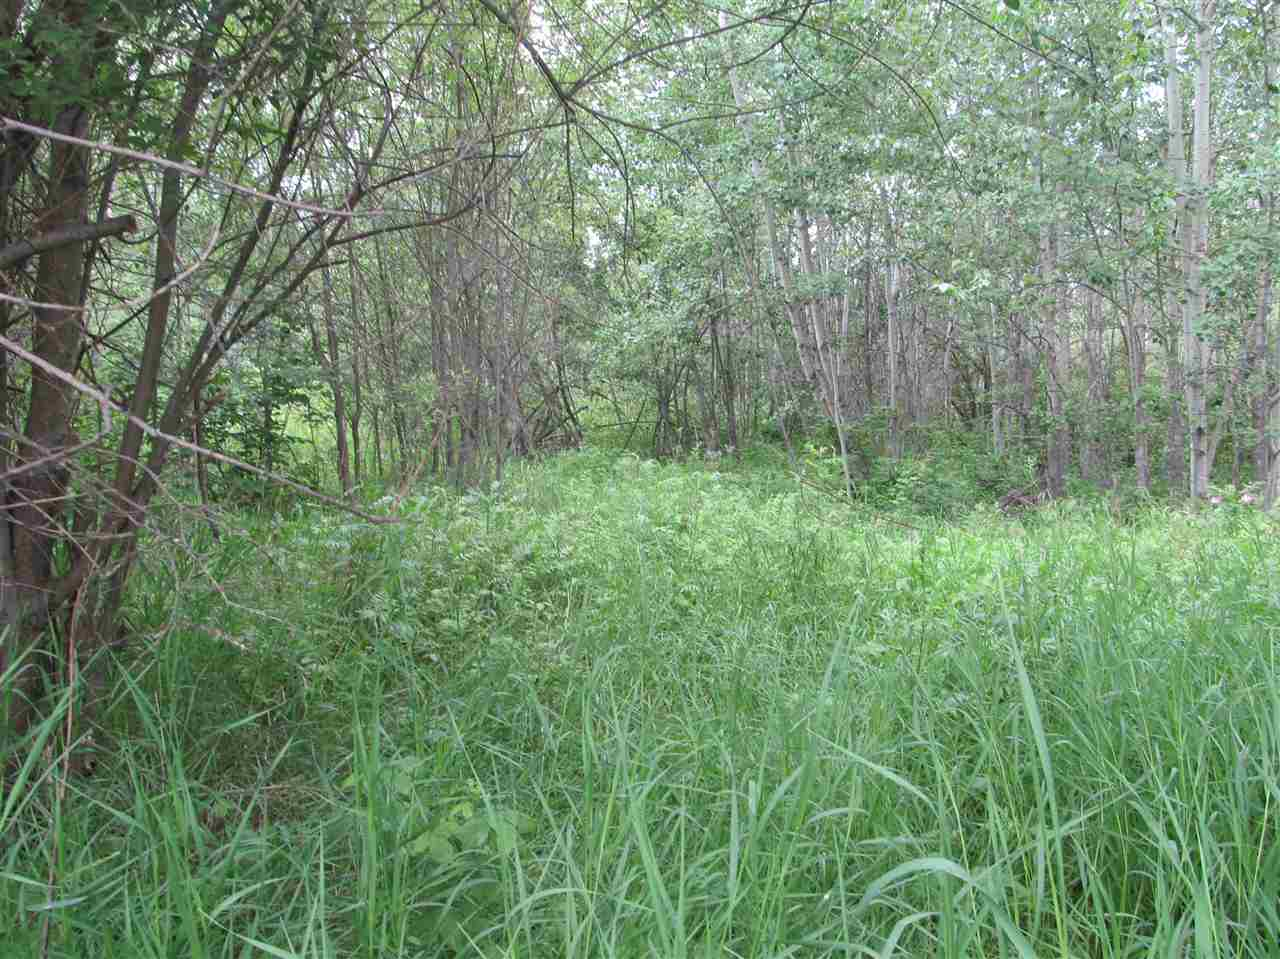 Photo 2: 451 Lakeview Drive: Rural Lac Ste. Anne County Rural Land/Vacant Lot for sale : MLS(r) # E4046294